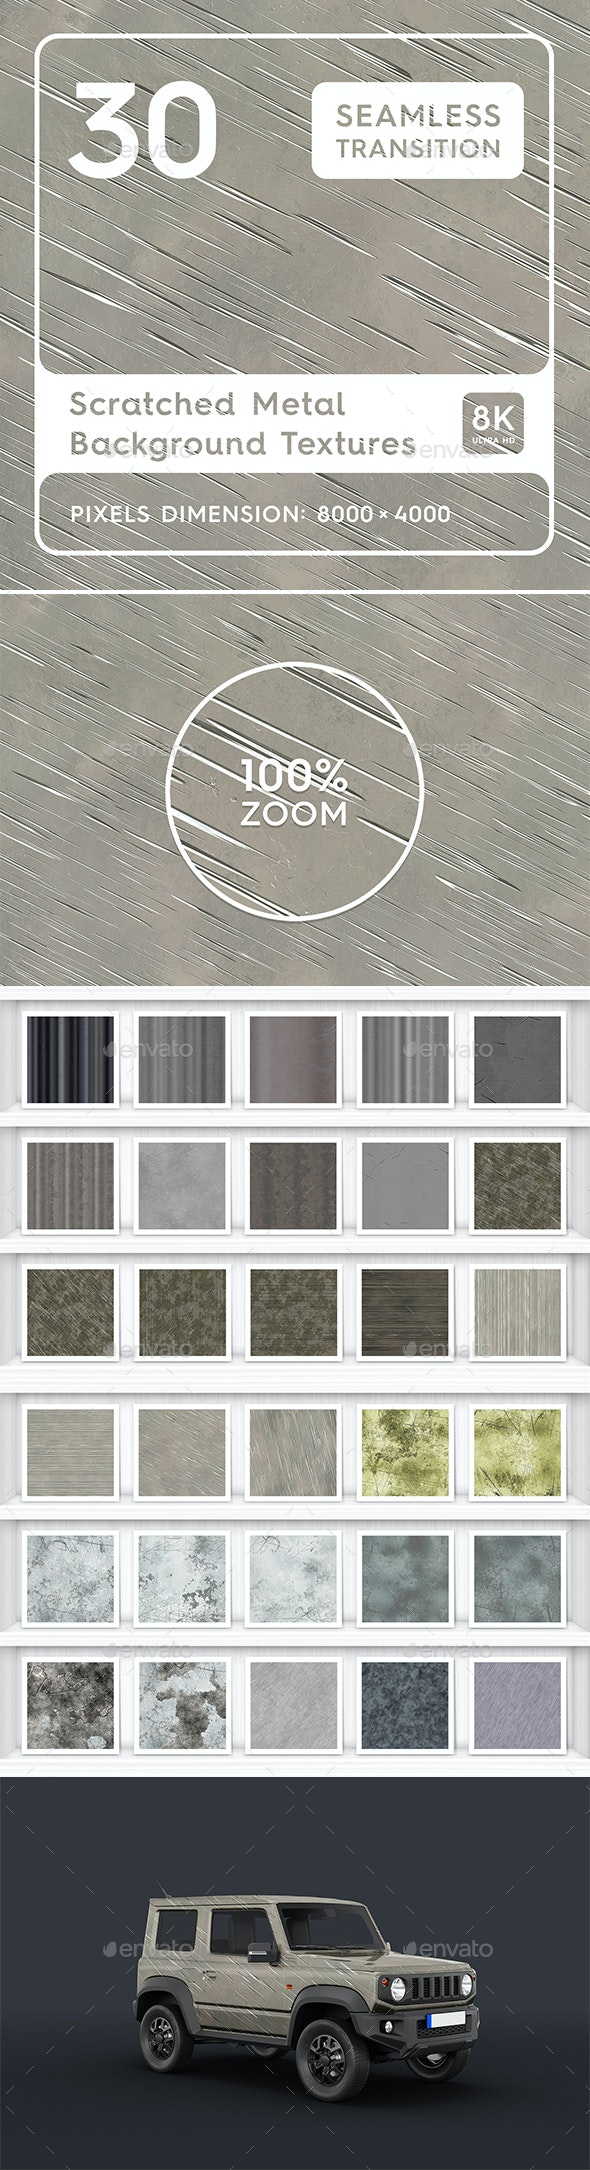 30 Scratched Metal Background Textures. - Tech / Futuristic Backgrounds